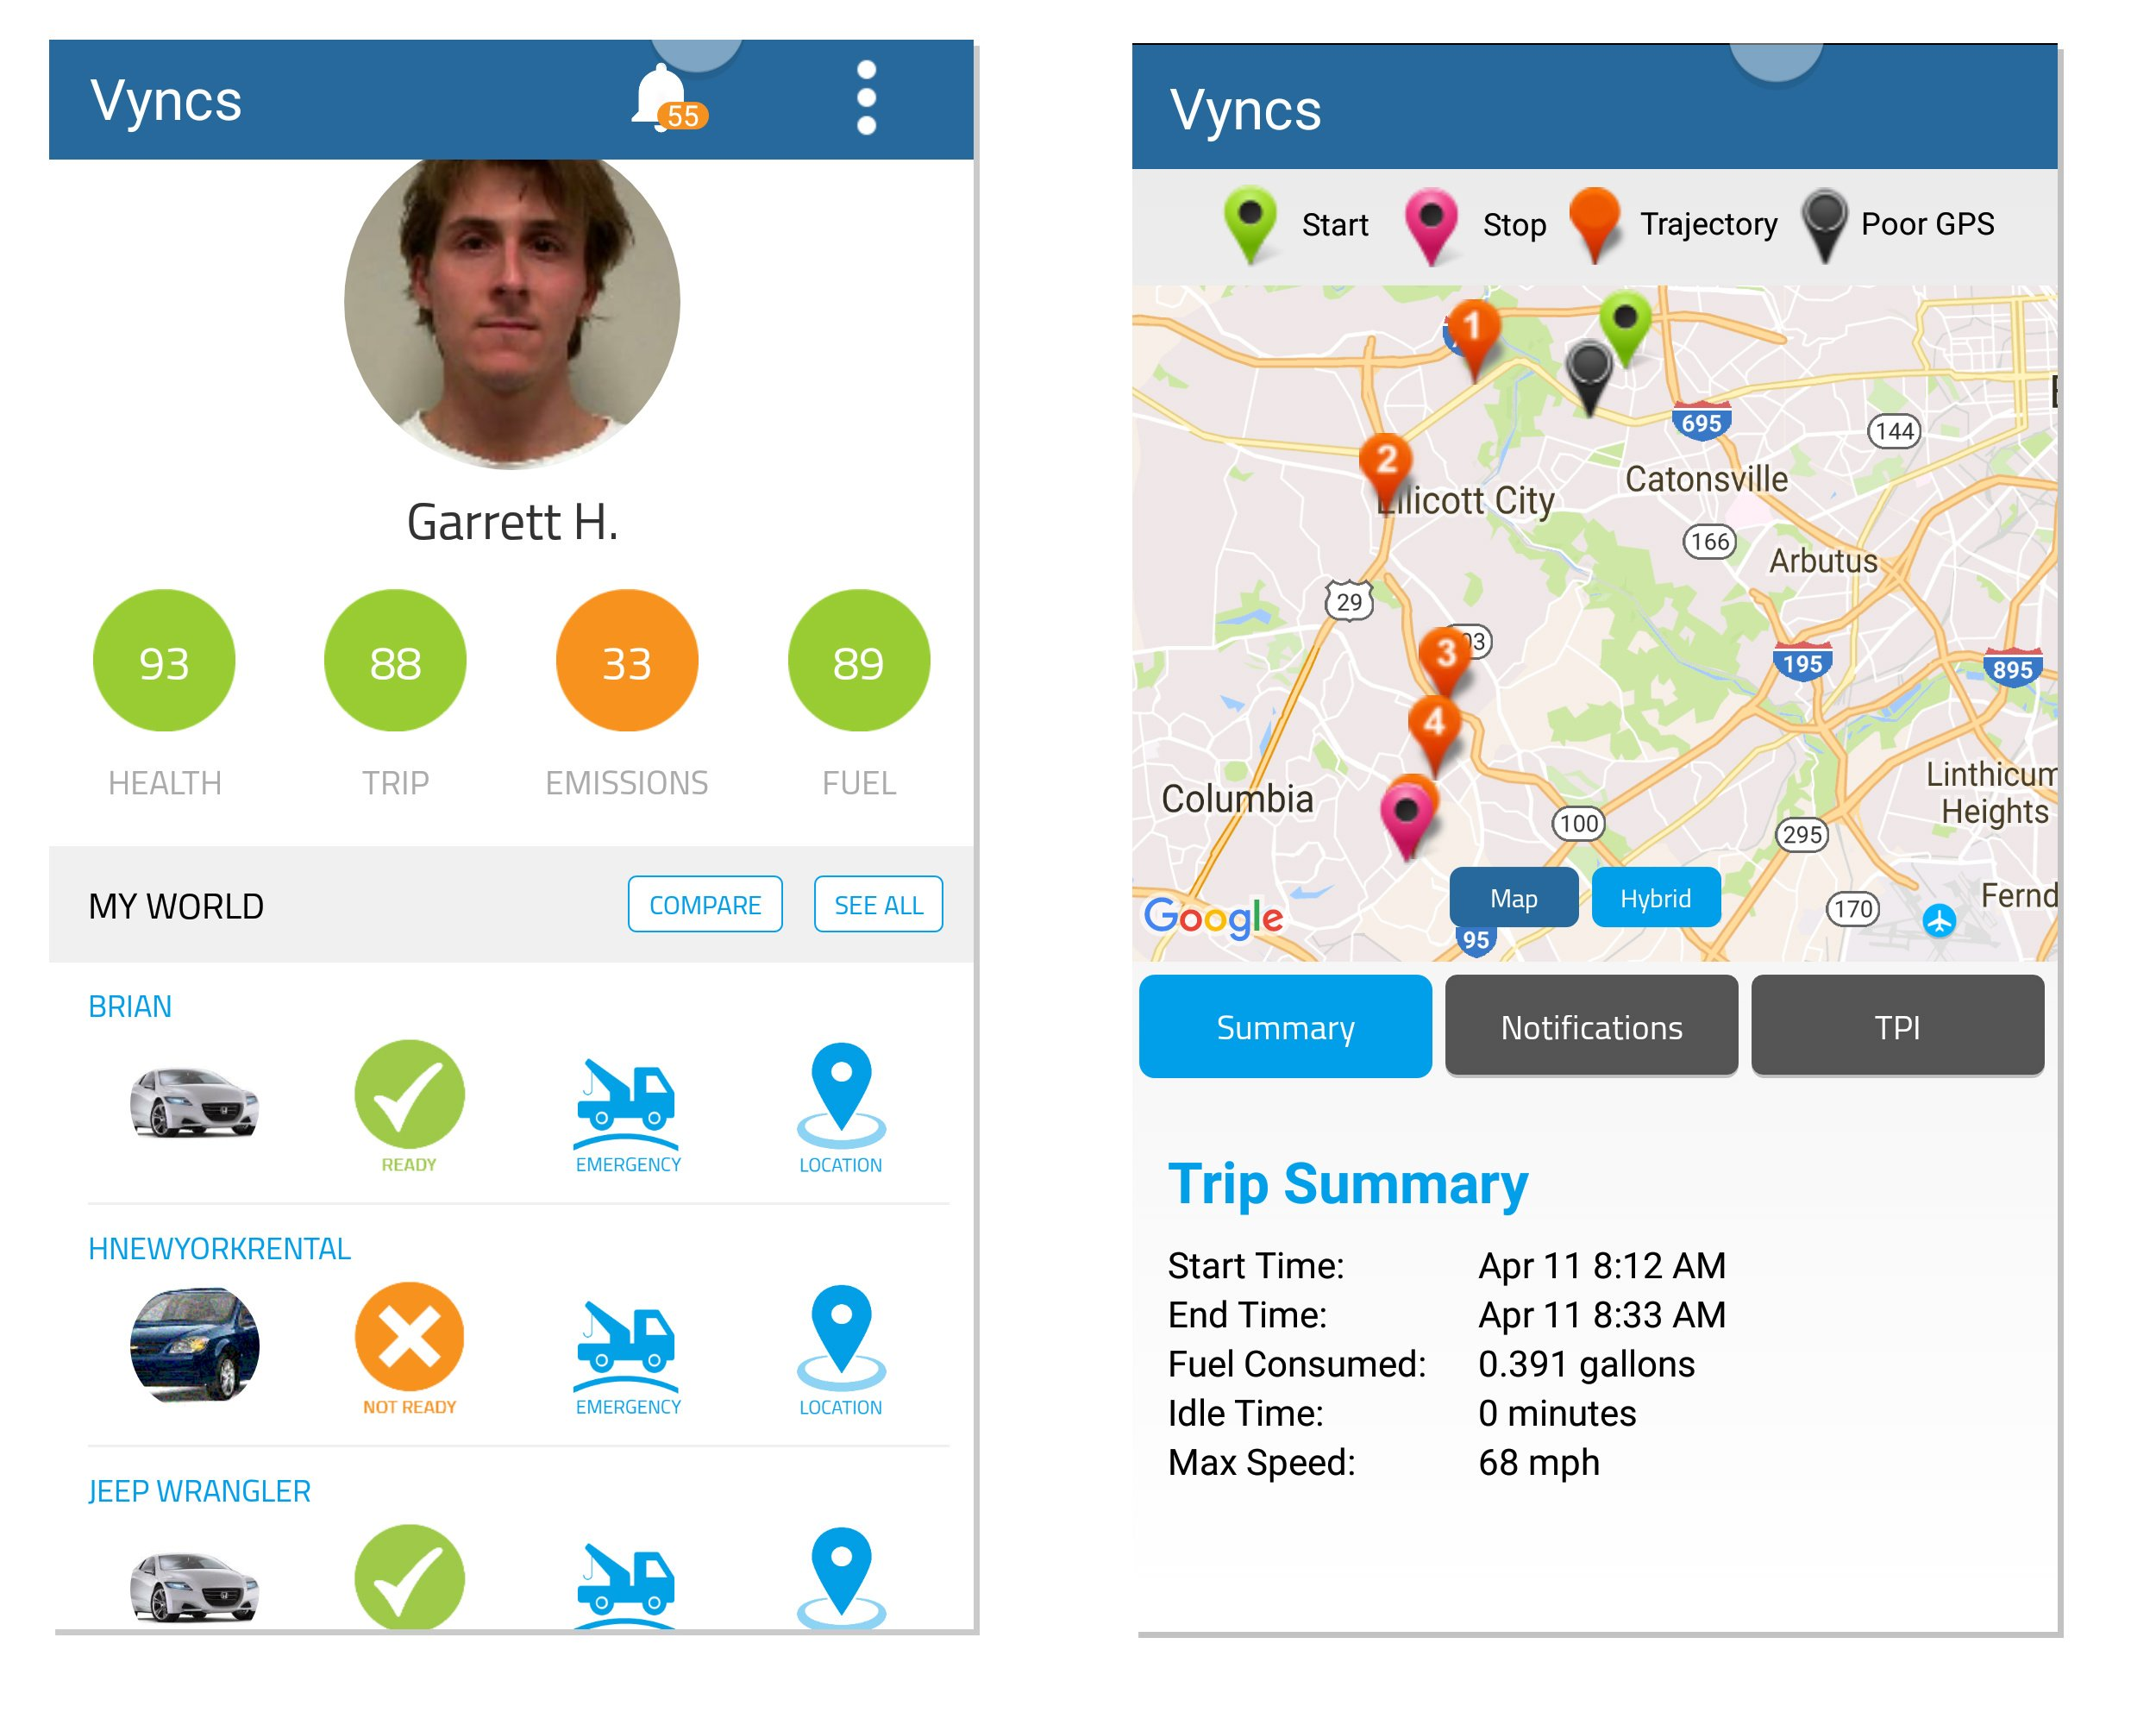 Vyncs Pro No Monthly Fee Connected Car OBD 3G Car GPS Tracker, Real Time GPS, Teen Coaching, Car Health, Fuel Economy, Emission, One year Roadside Assistance Included VPOBDGPS3 by Vyncs (Image #6)